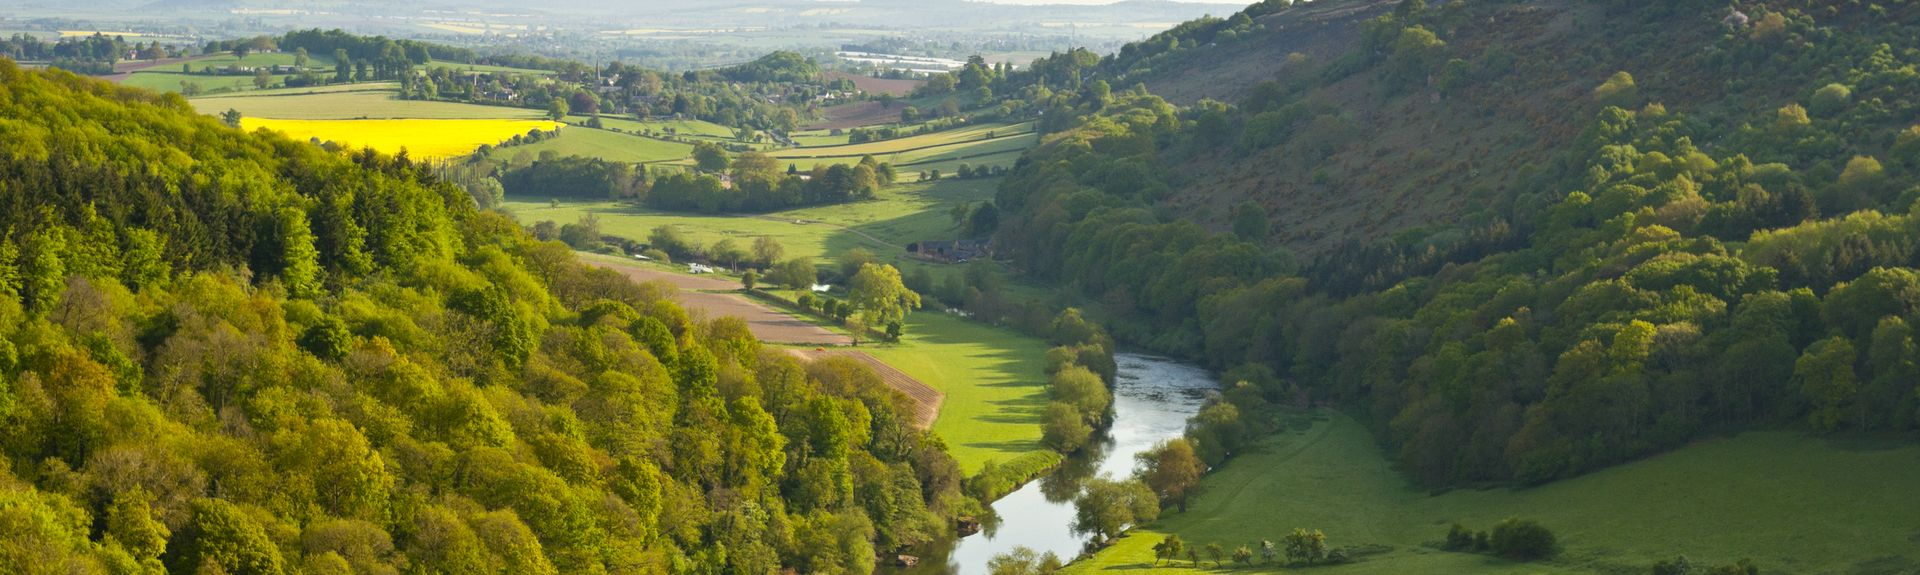 Monmouth, Monmouthshire, UK